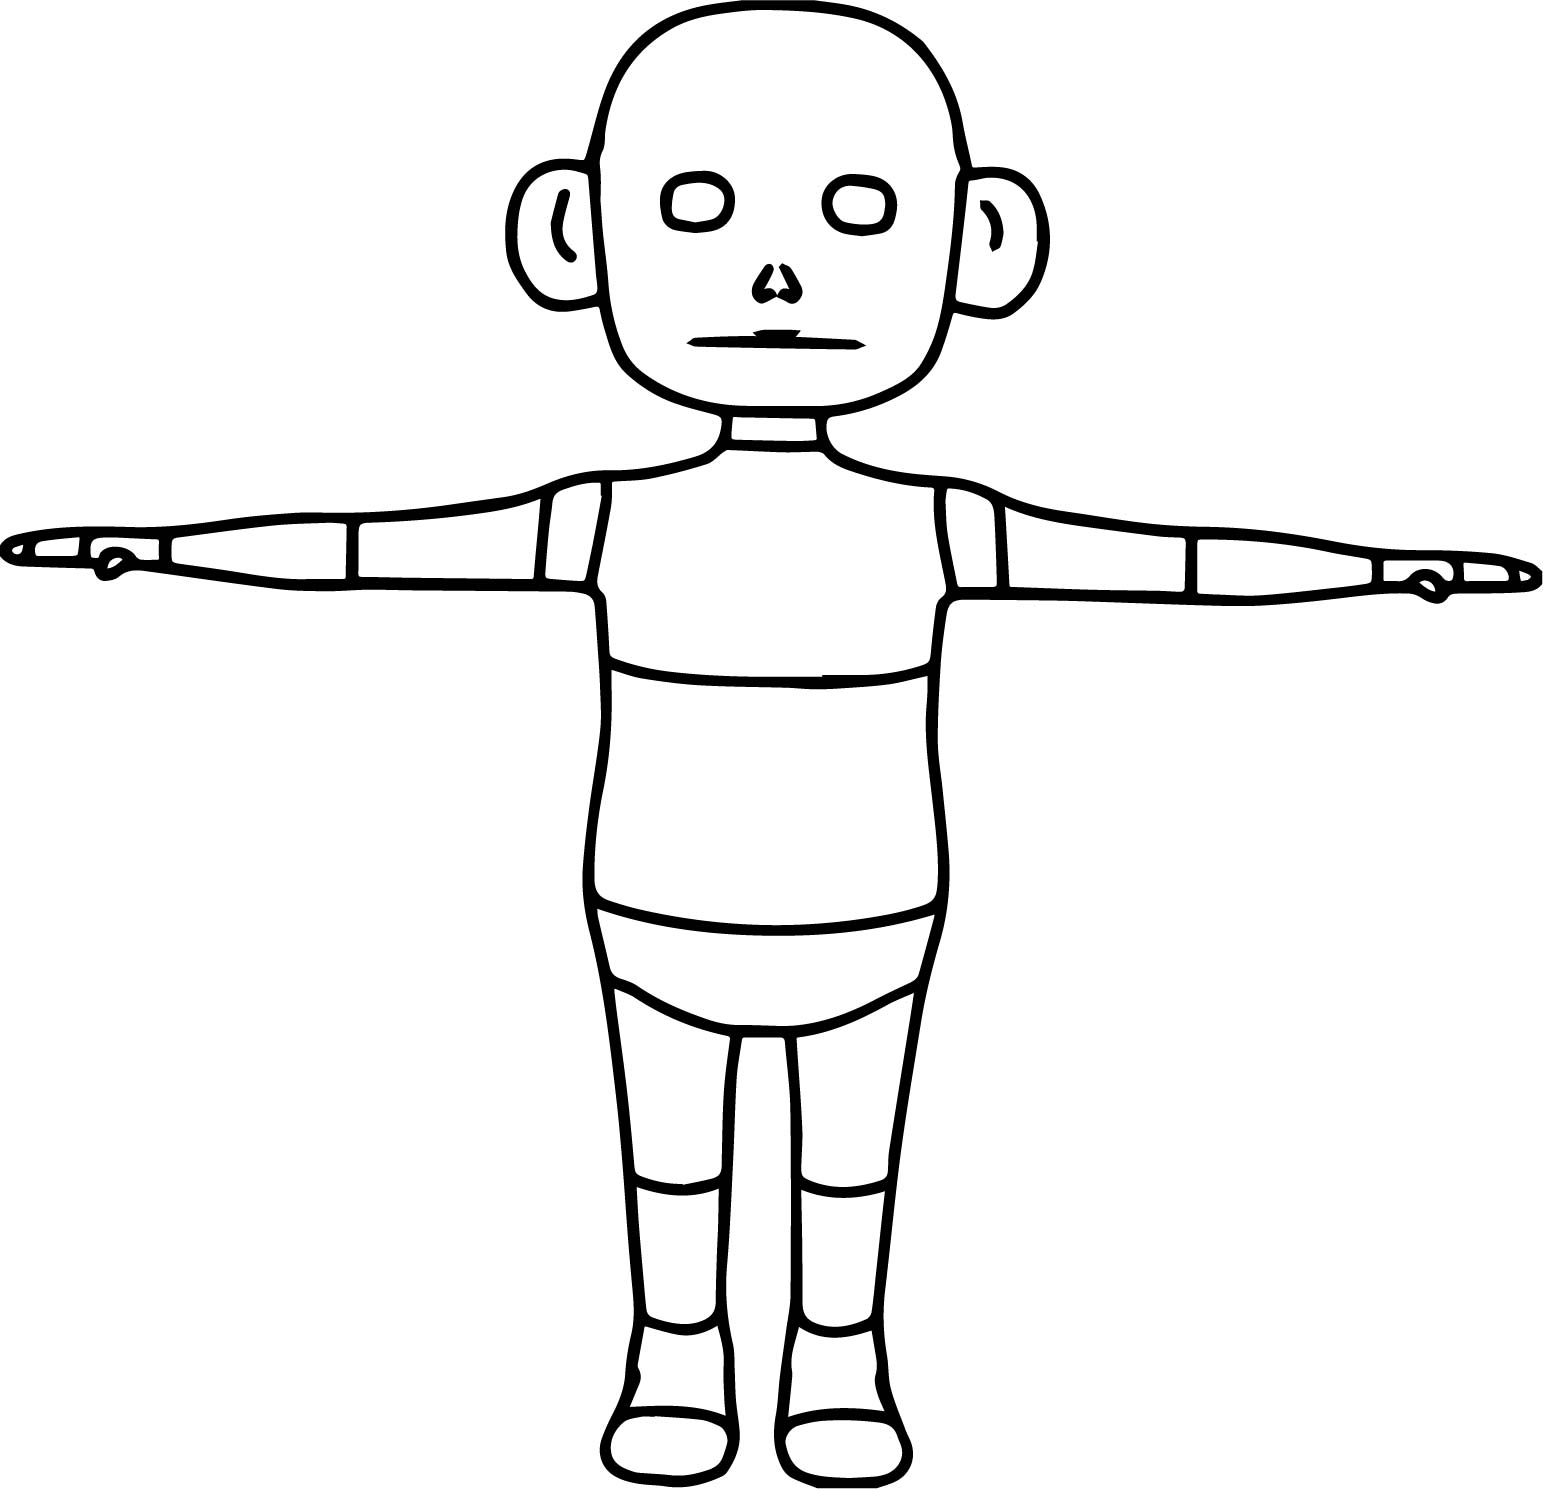 open arms space monkey coloring page wecoloringpage